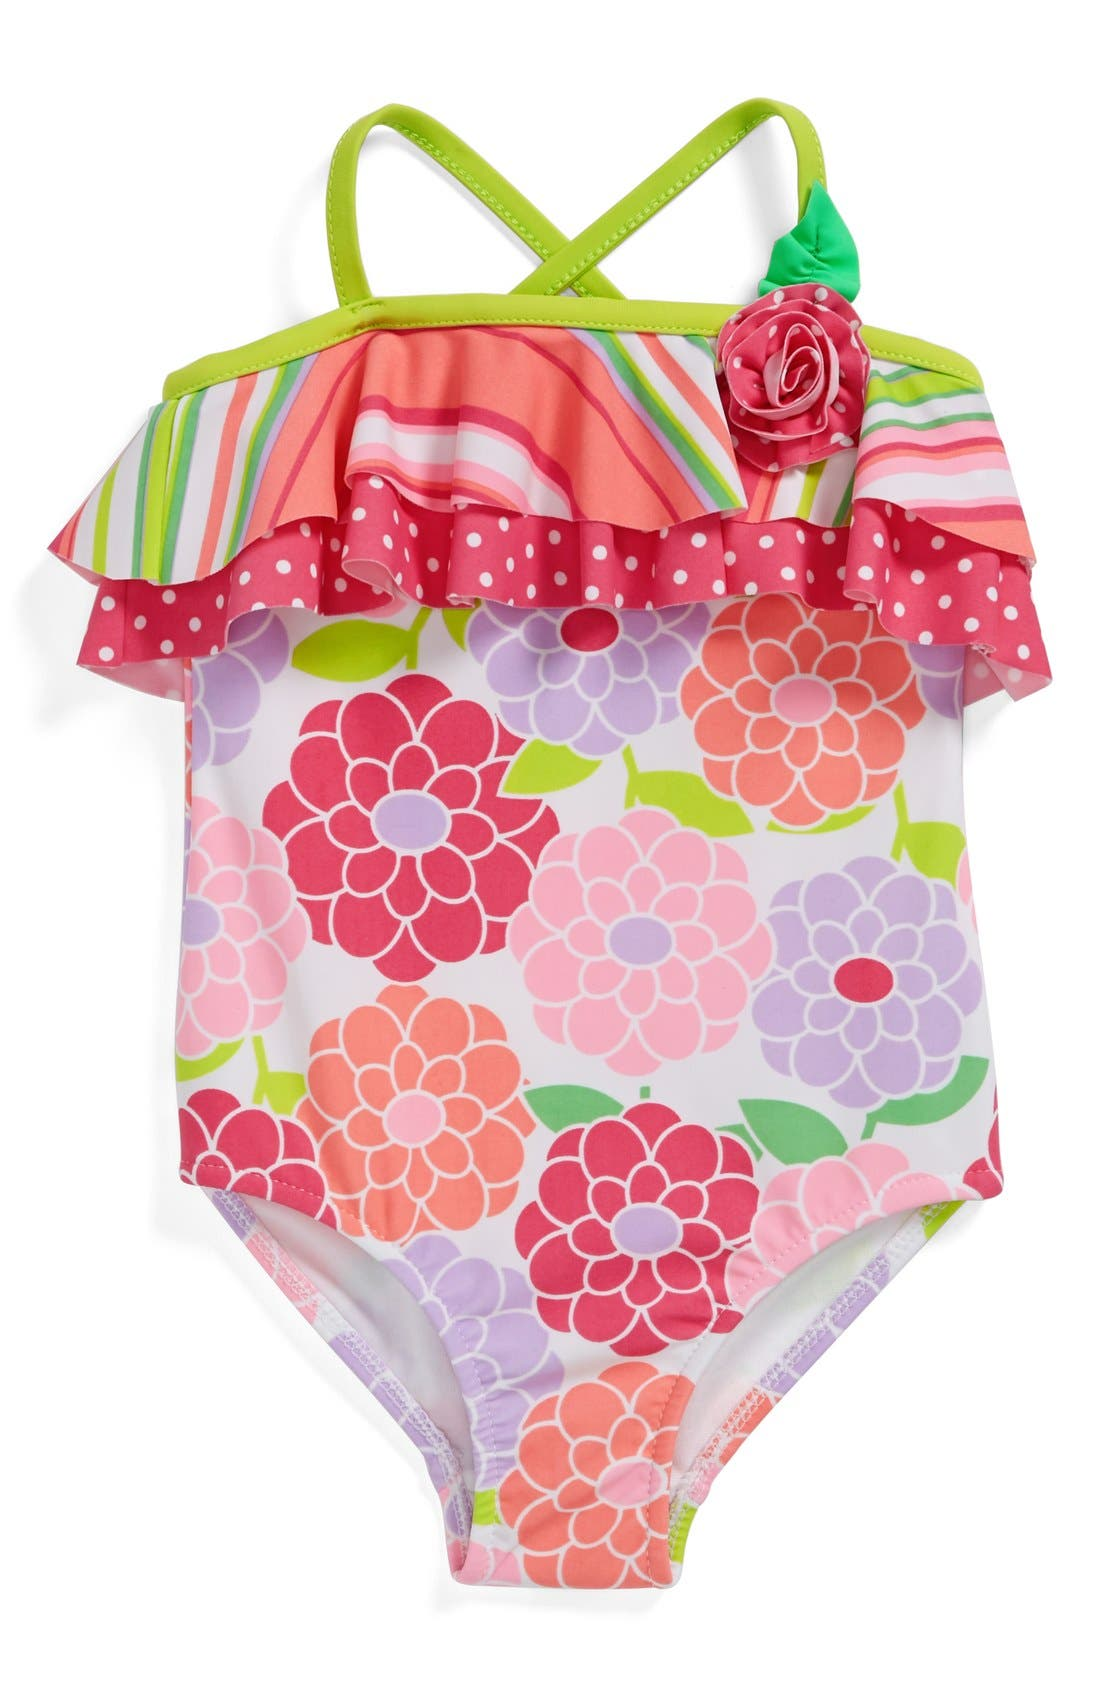 Main Image - Love U Lots One-Piece Swimsuit (Toddler Girls)